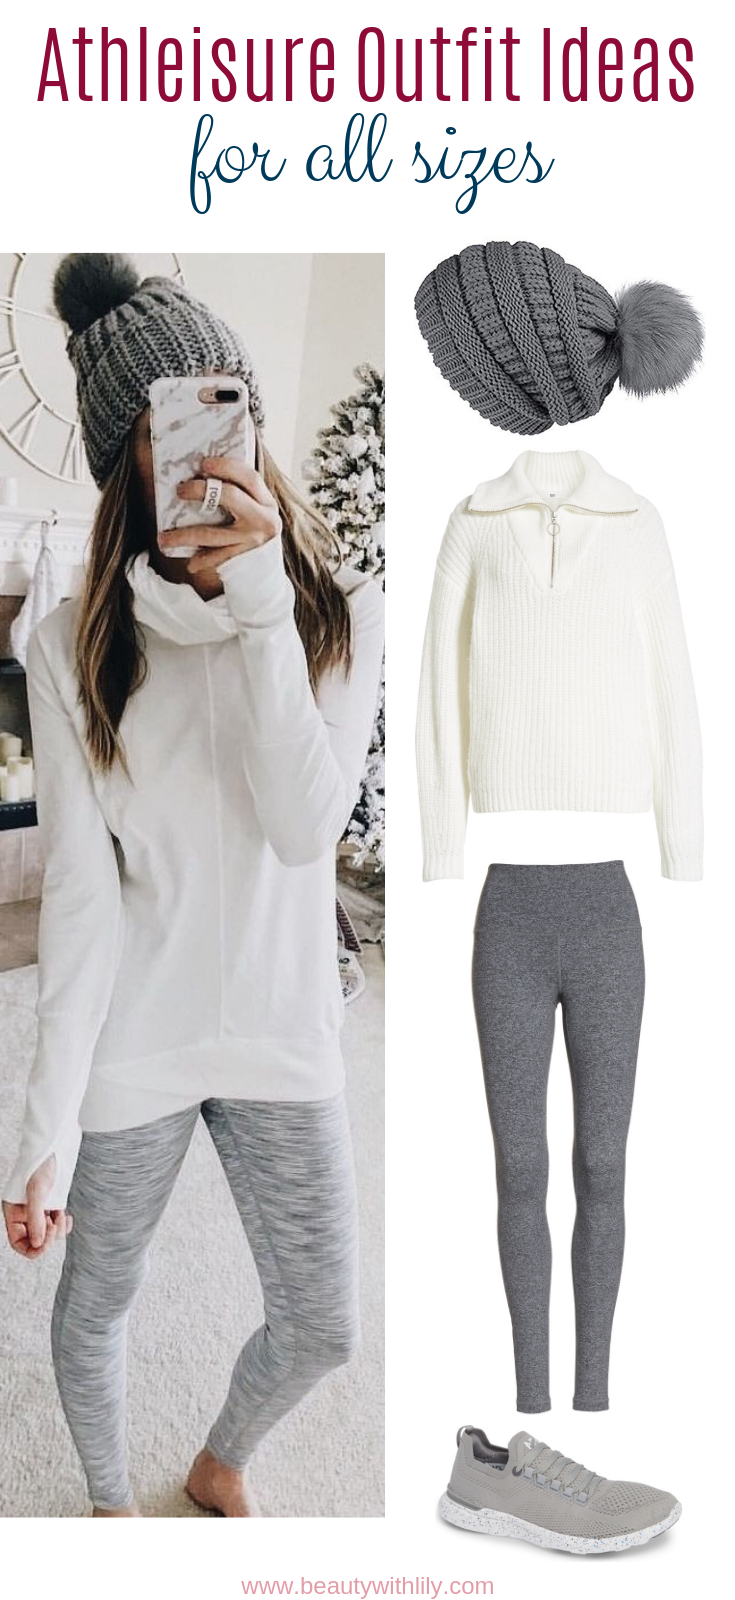 Winter Athleisure Outfits // Athletic Wear // Athleisure Outfit Ideas // Winter Outfit Ideas // Casual Outfits // Comfortable Clothing // Affordable Clothing // Sporty Fashion // Winter Fashion // Plus Size Fashion | Beauty With Lily